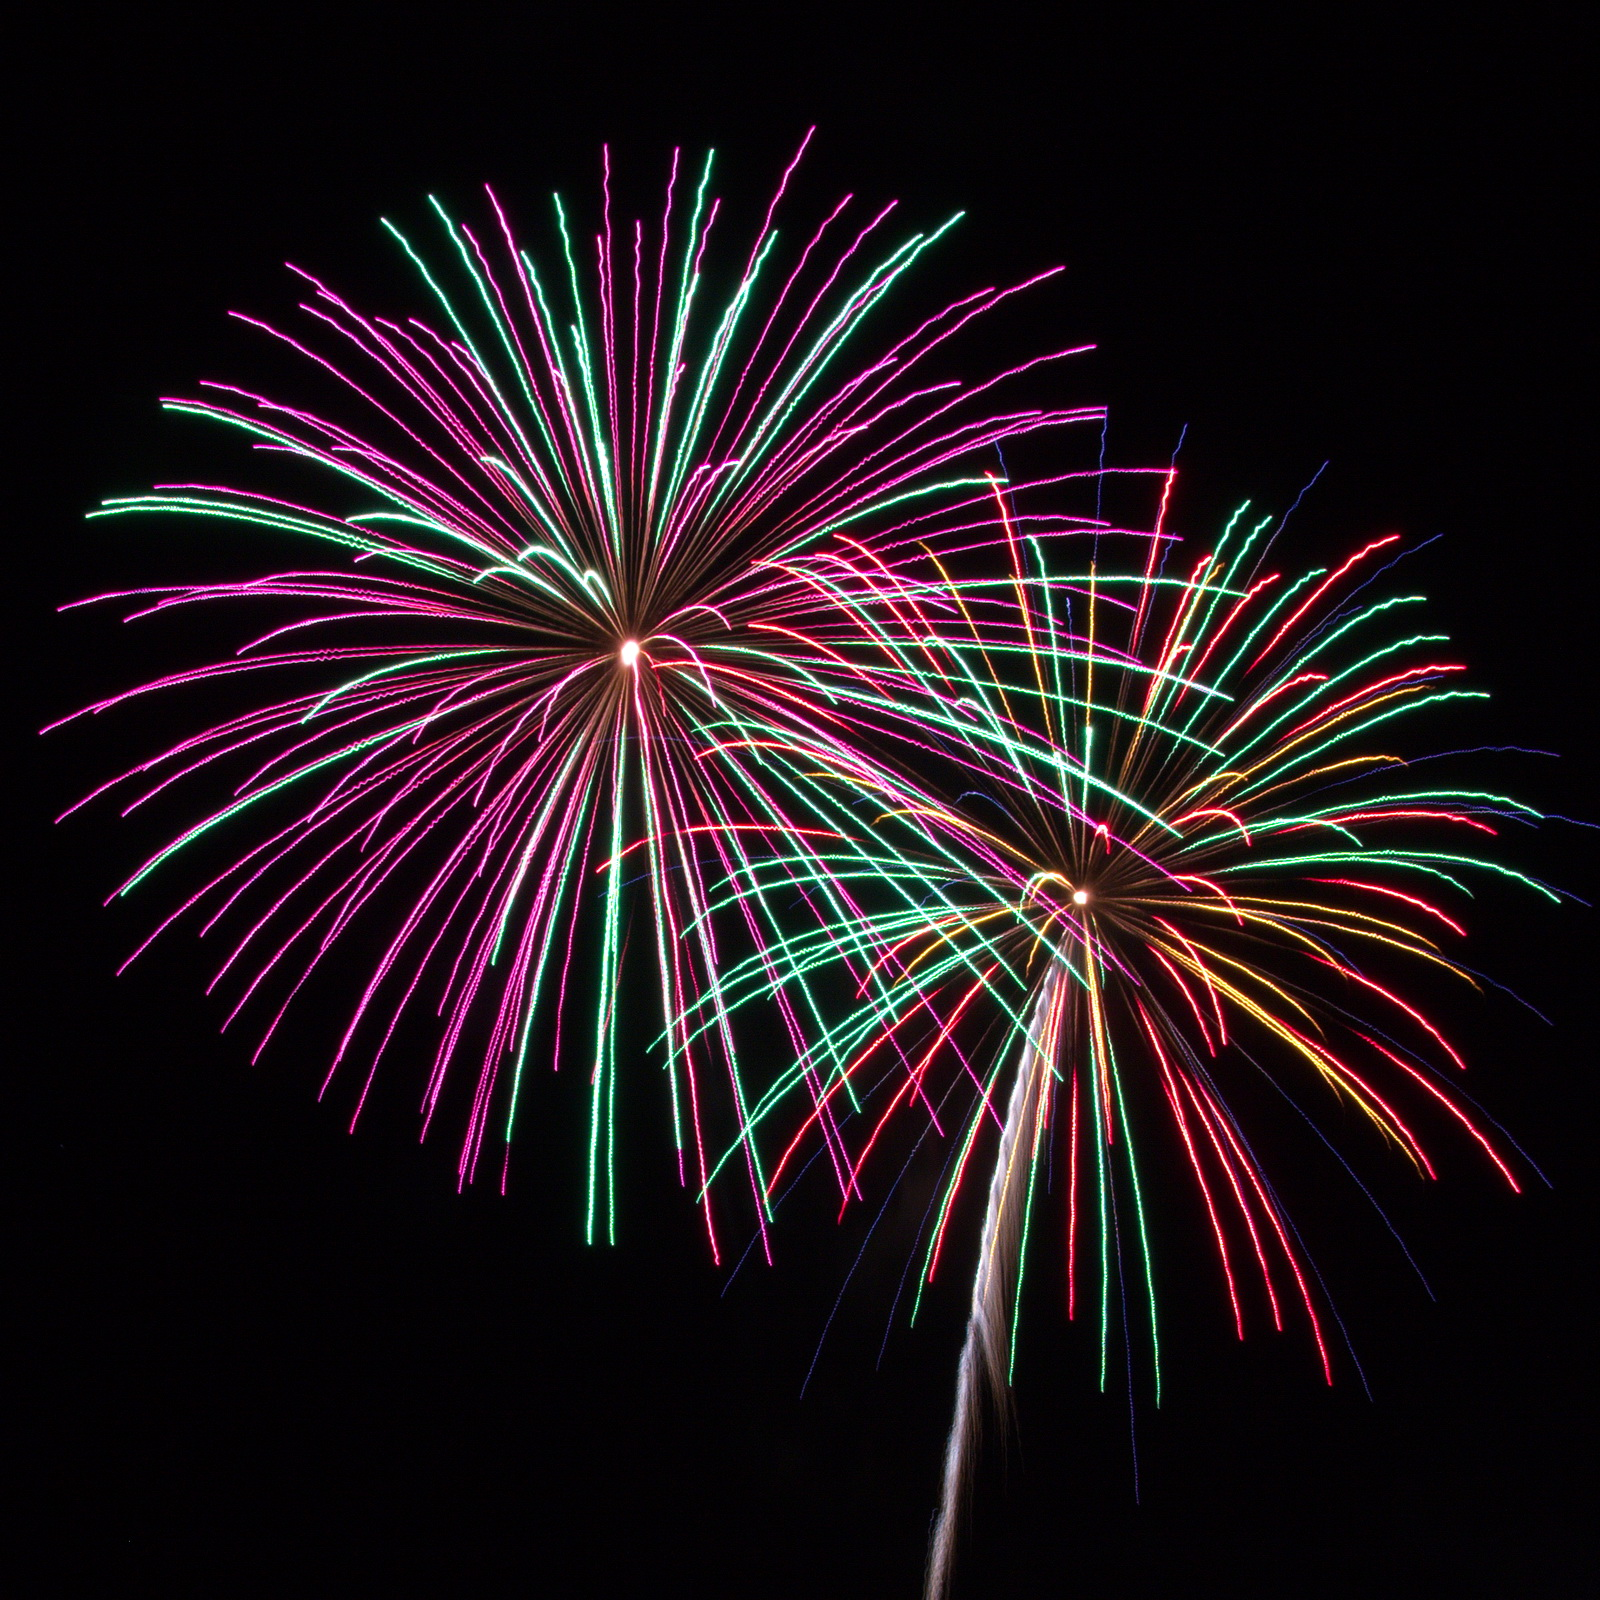 Northeast Massachusetts Fireworks: purple and mint green with yellow